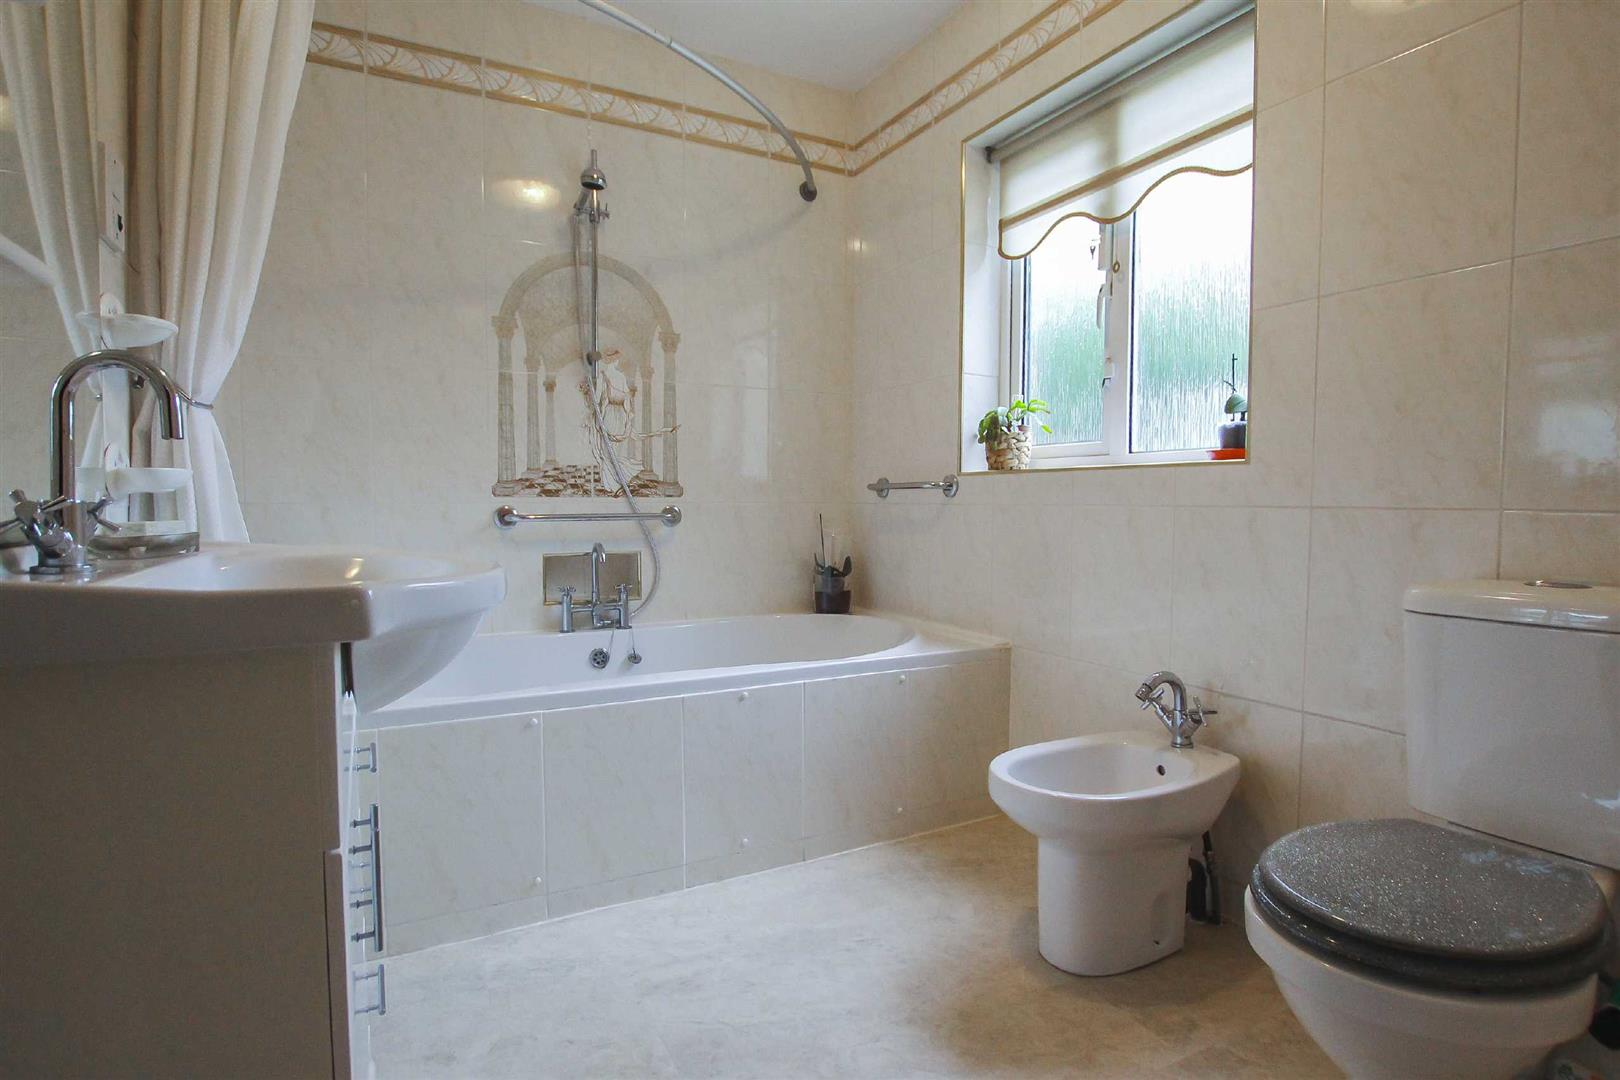 5 Bedroom Detached House For Sale - Image 13